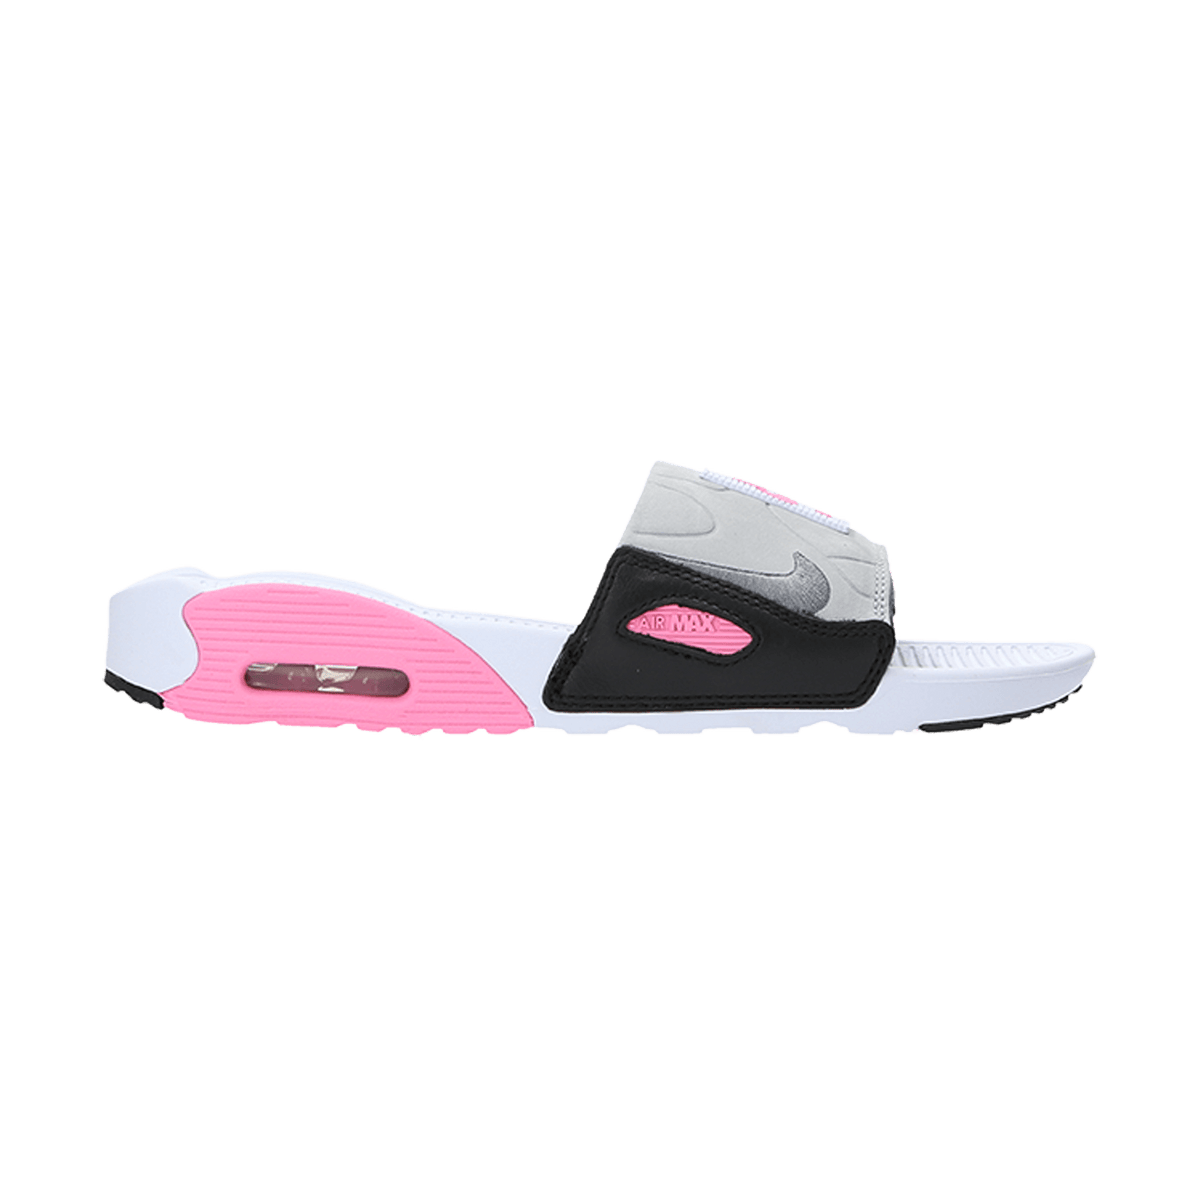 Nike Women's Air Max 90 Slide  - XHIBITION